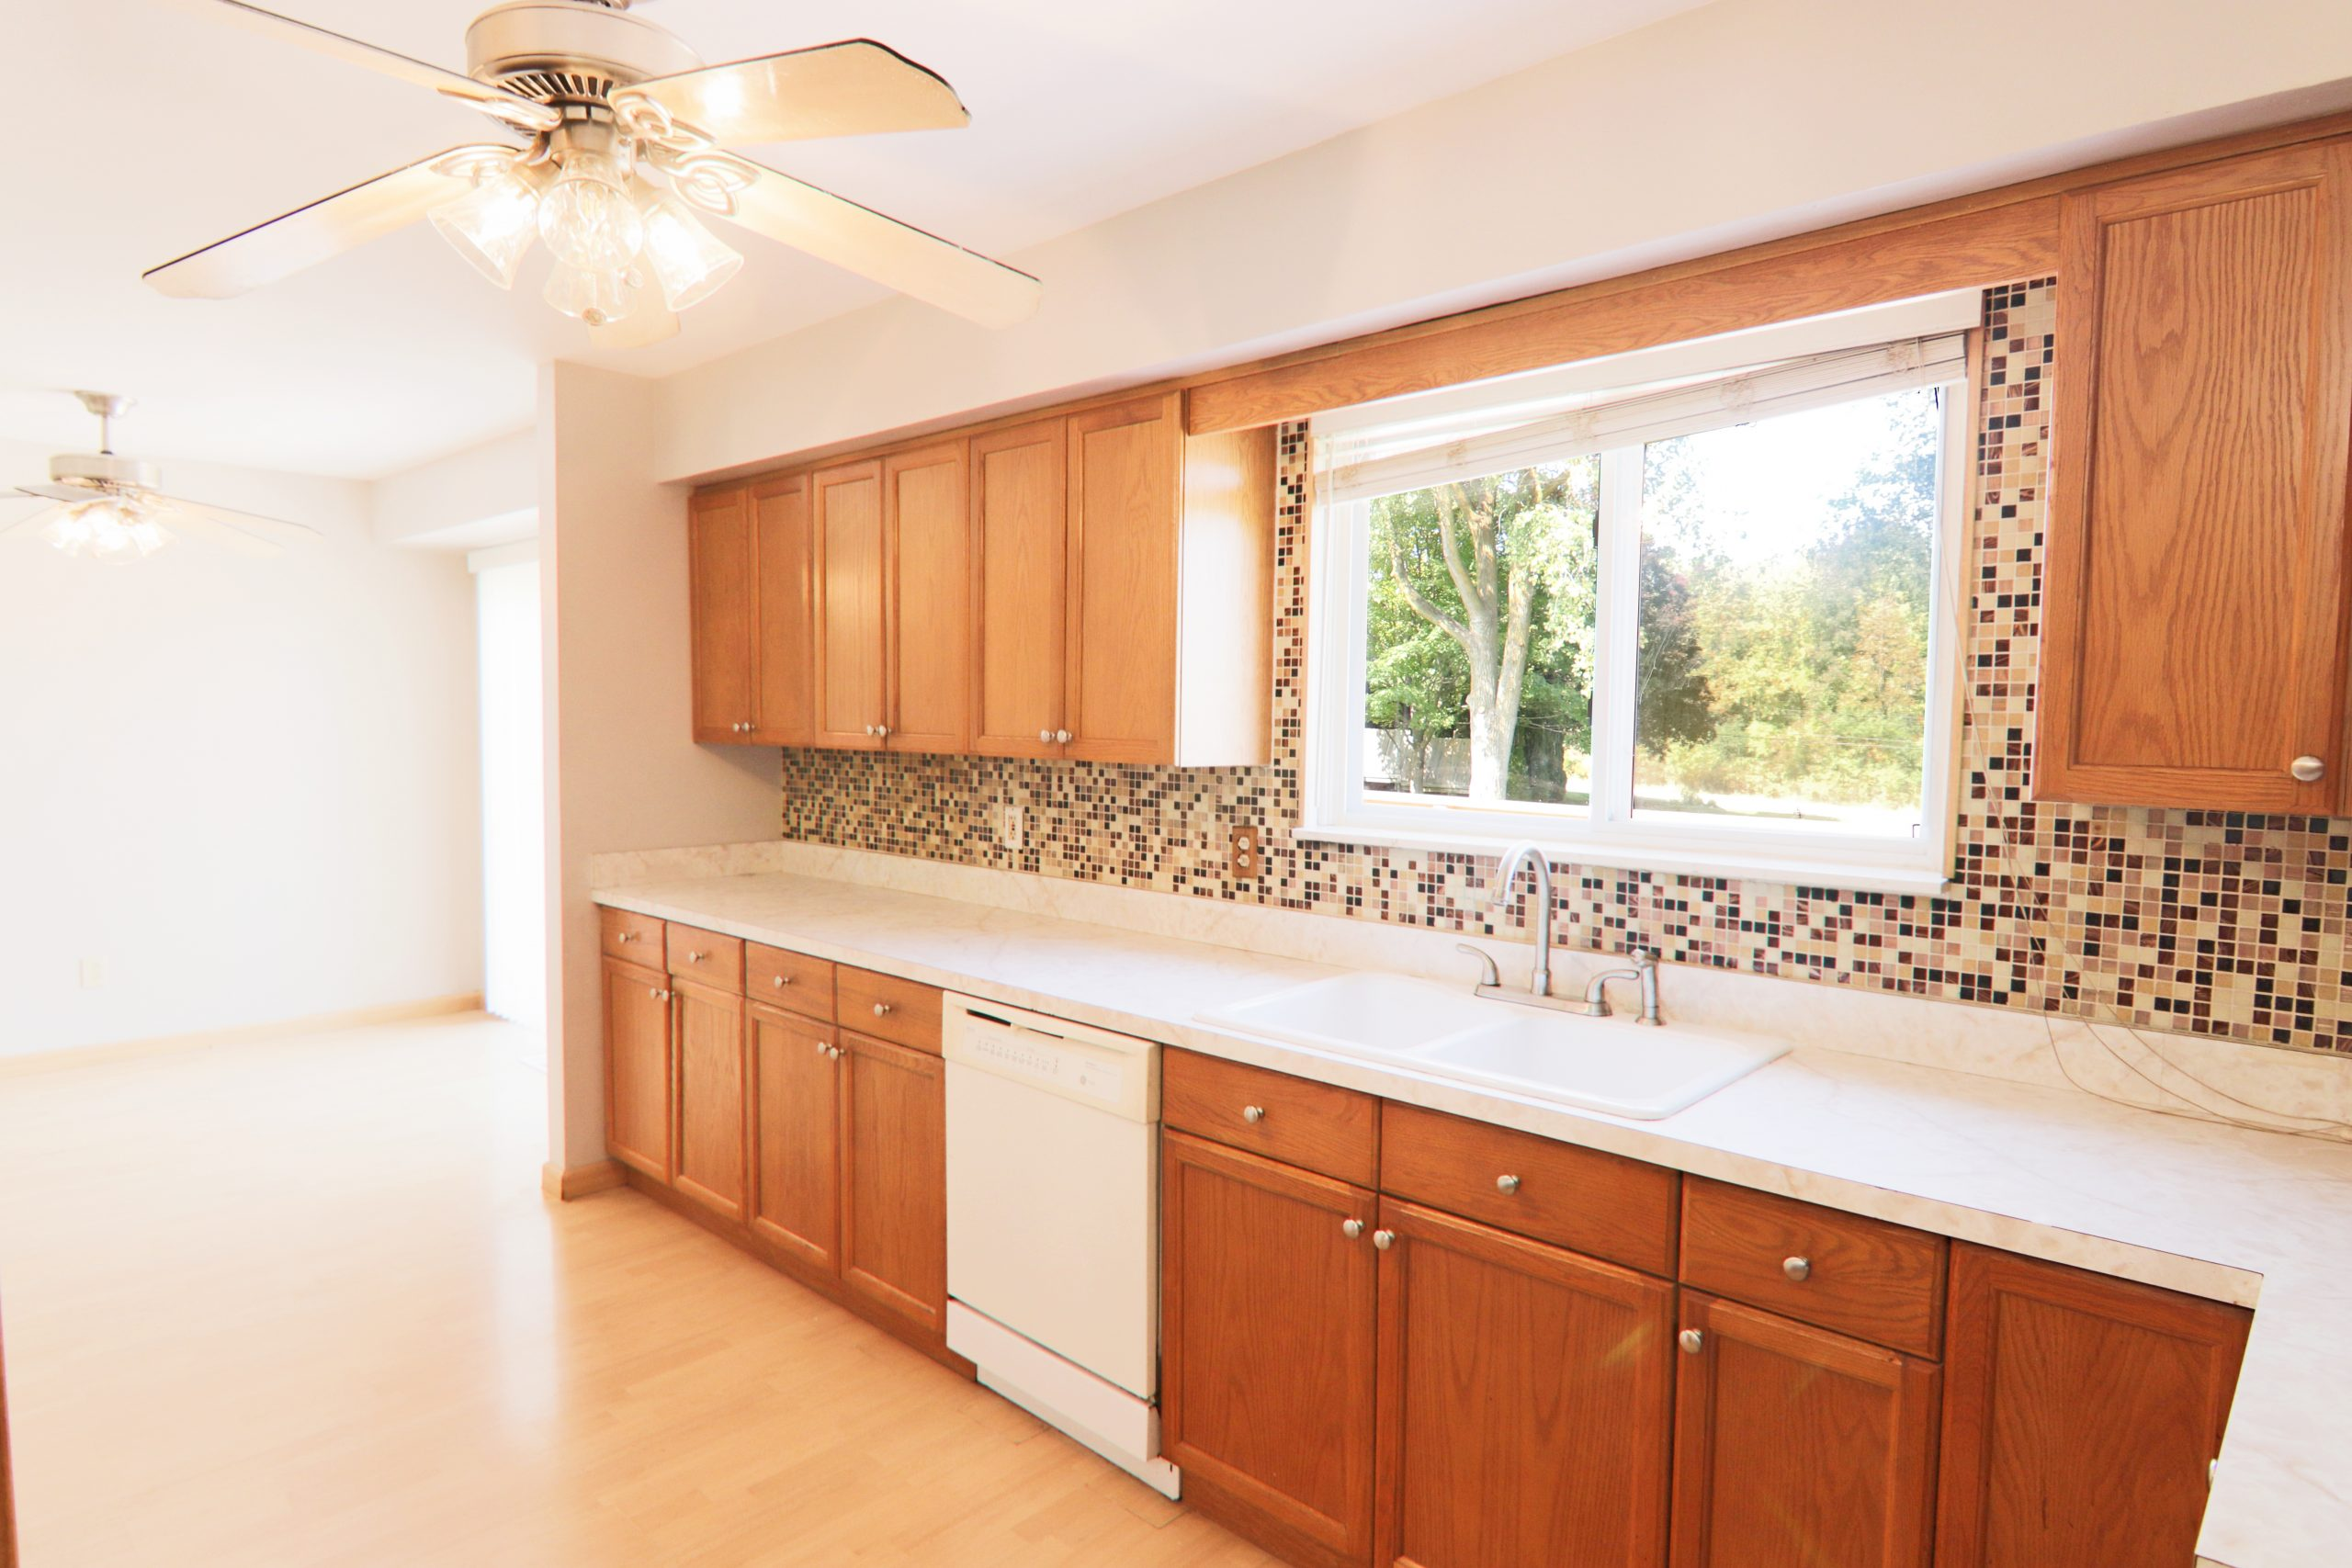 Sell Your Home in Flint, MI